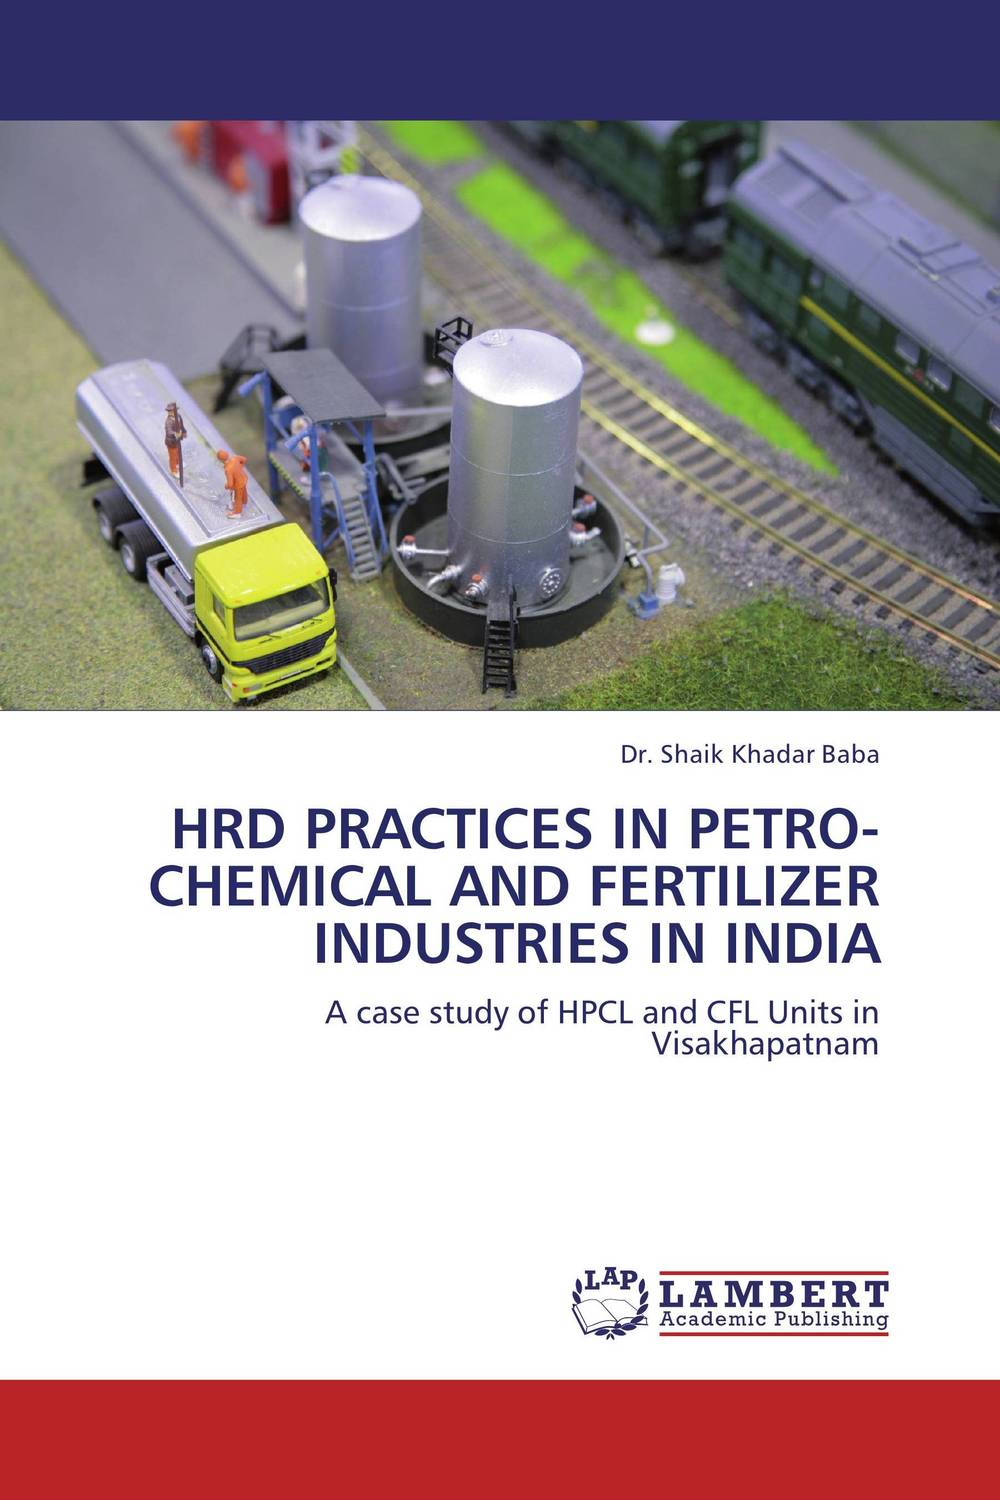 HRD PRACTICES IN PETRO-CHEMICAL AND FERTILIZER INDUSTRIES IN INDIA columbia petro масло вазелиновое индия в москве